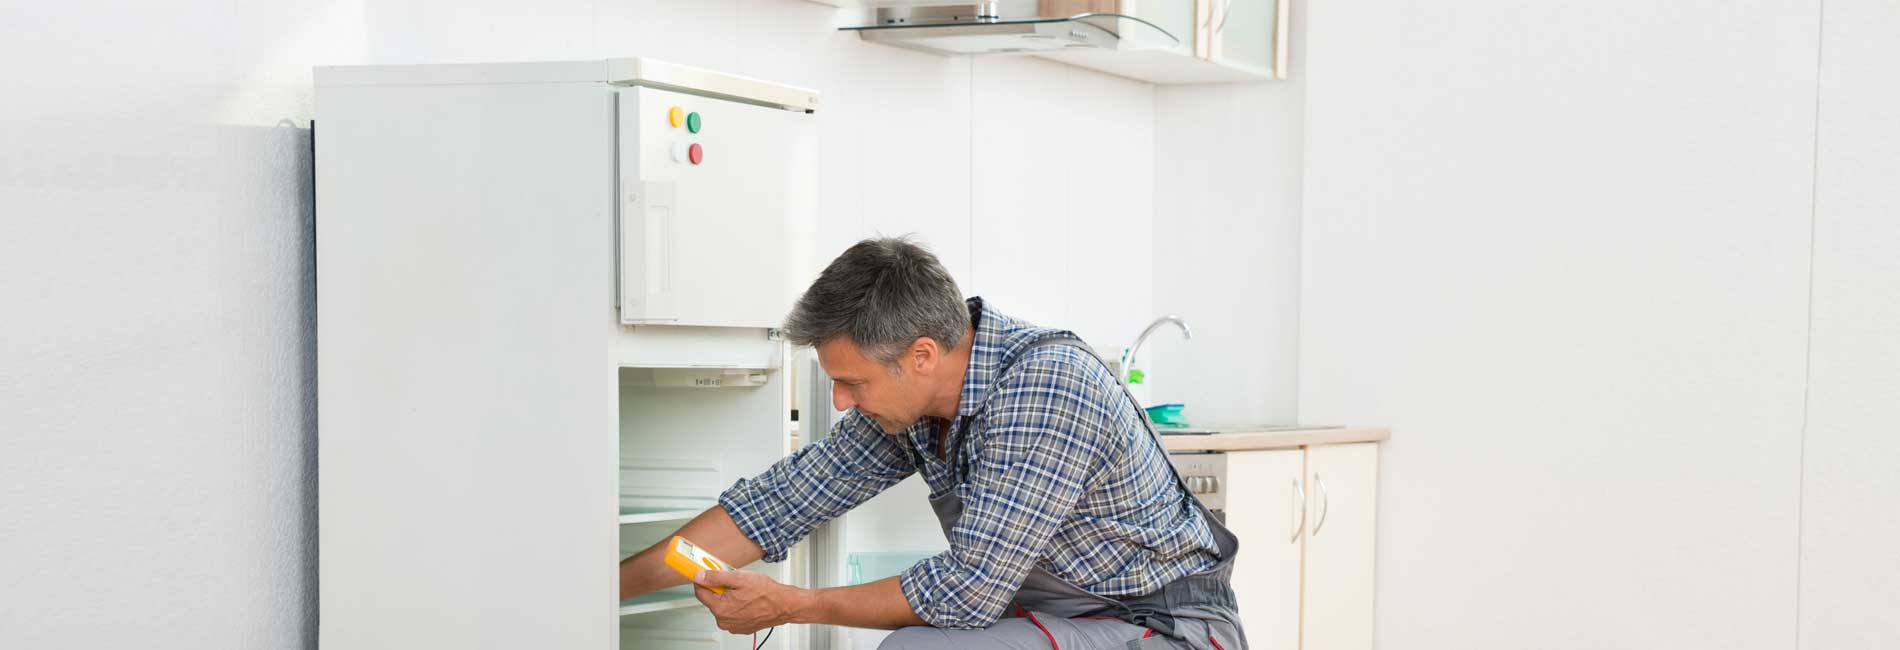 Refrigerator Repair in Kanathur